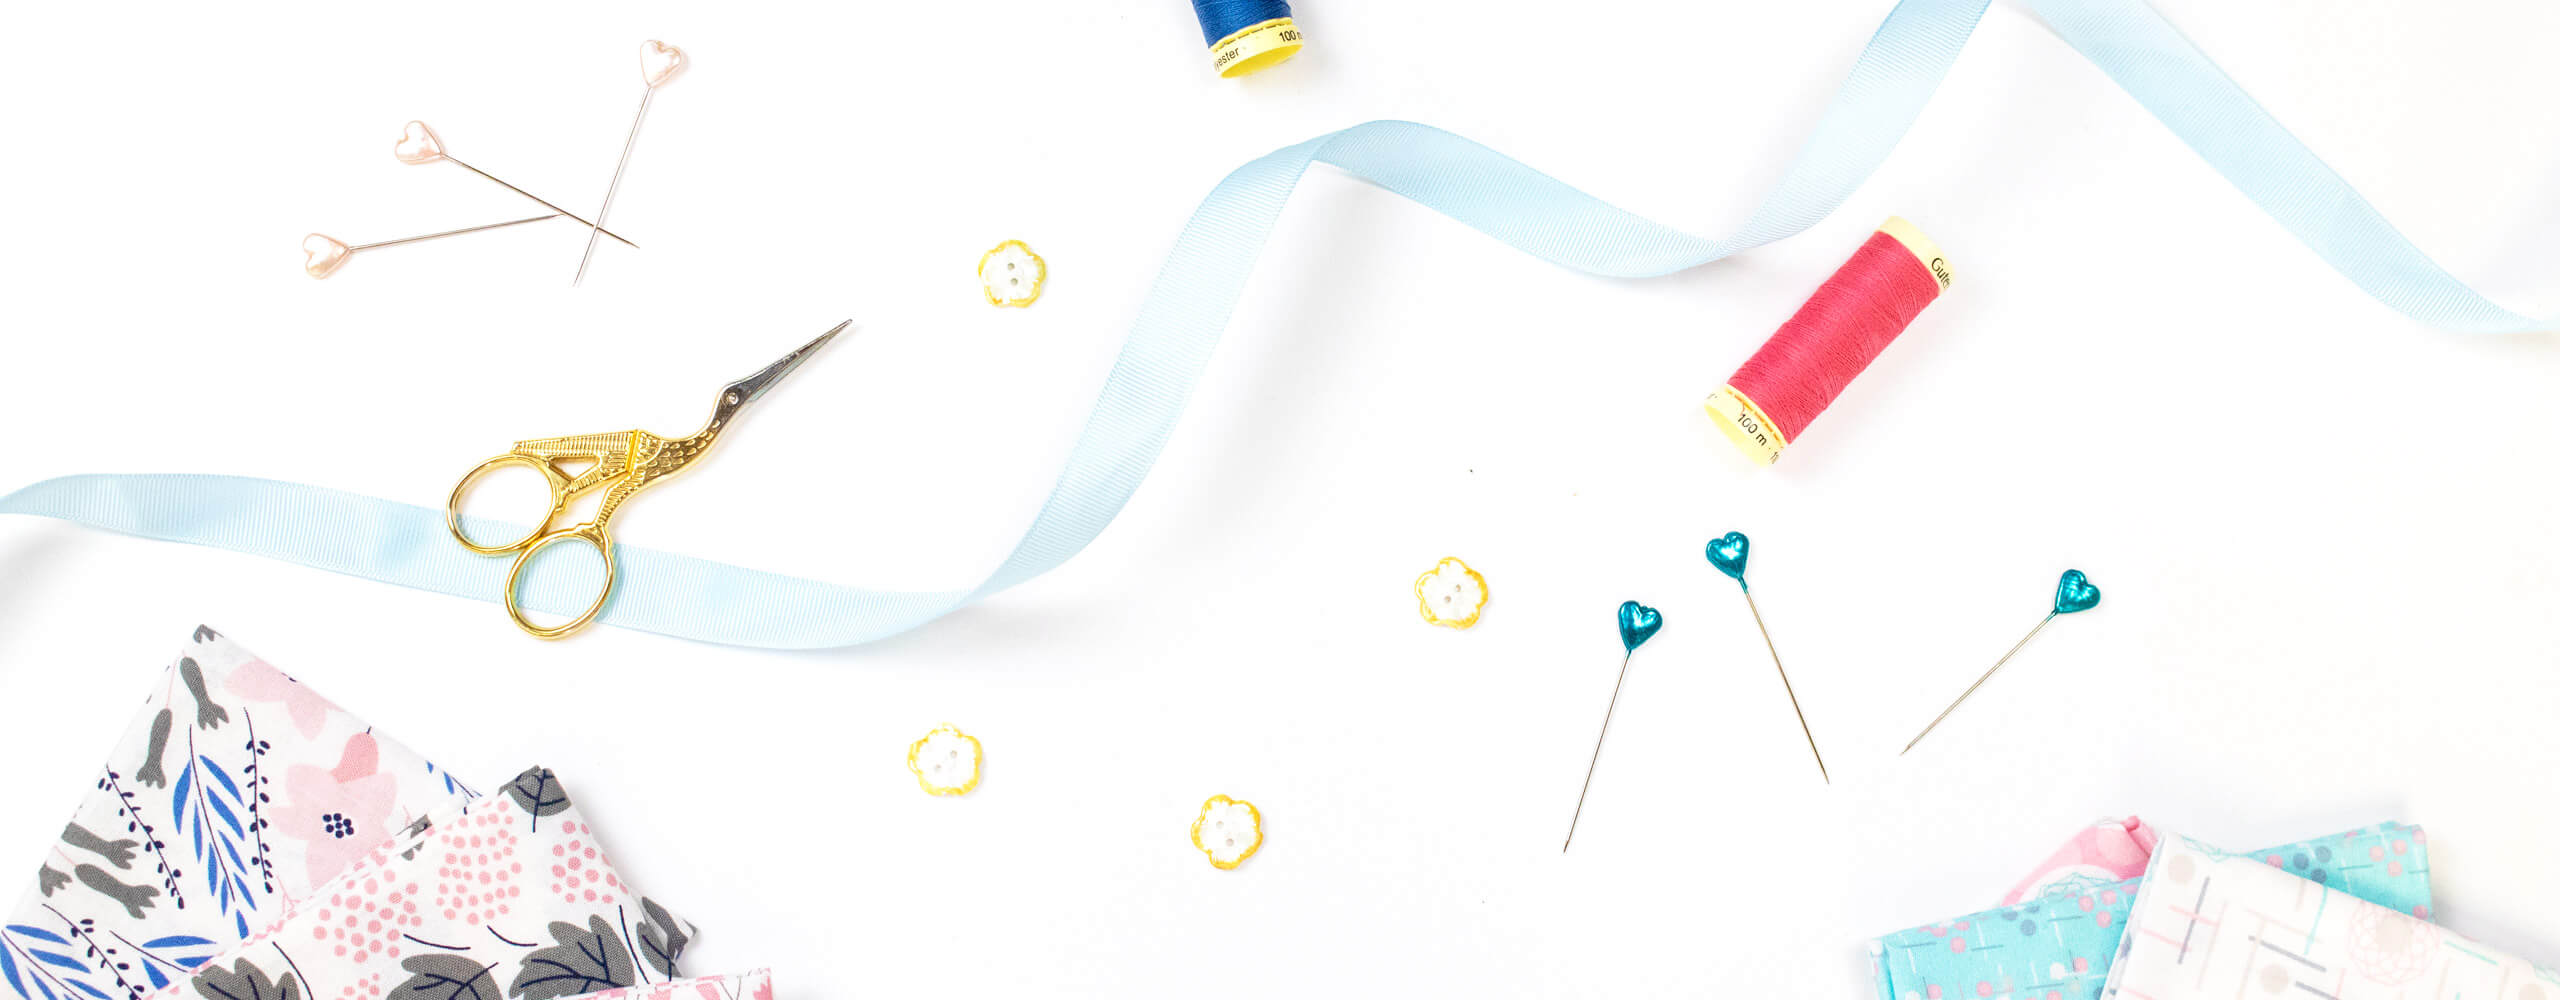 Banner image representing assorted sewing and haberdashery related items.